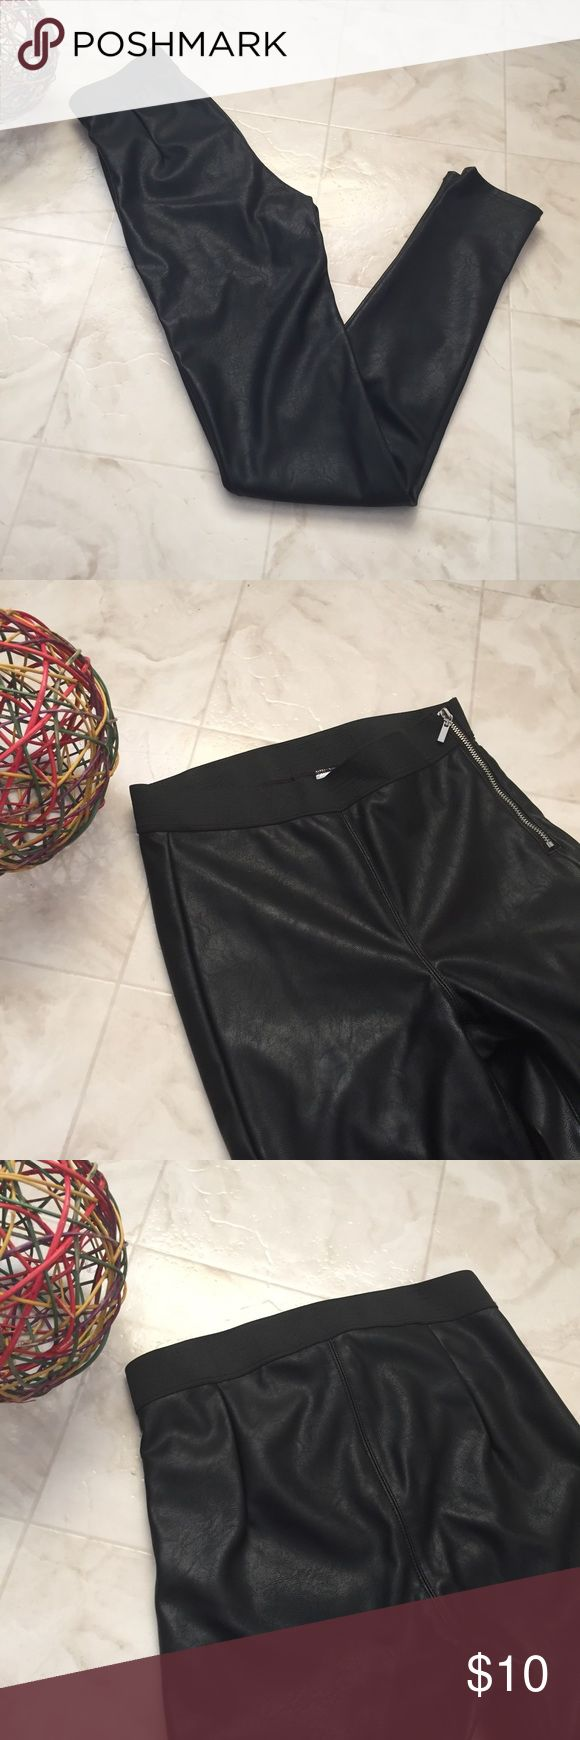 H&M Leggings Faux leather legging with side zipper detail on the left. New without tag H&M Pants Leggings